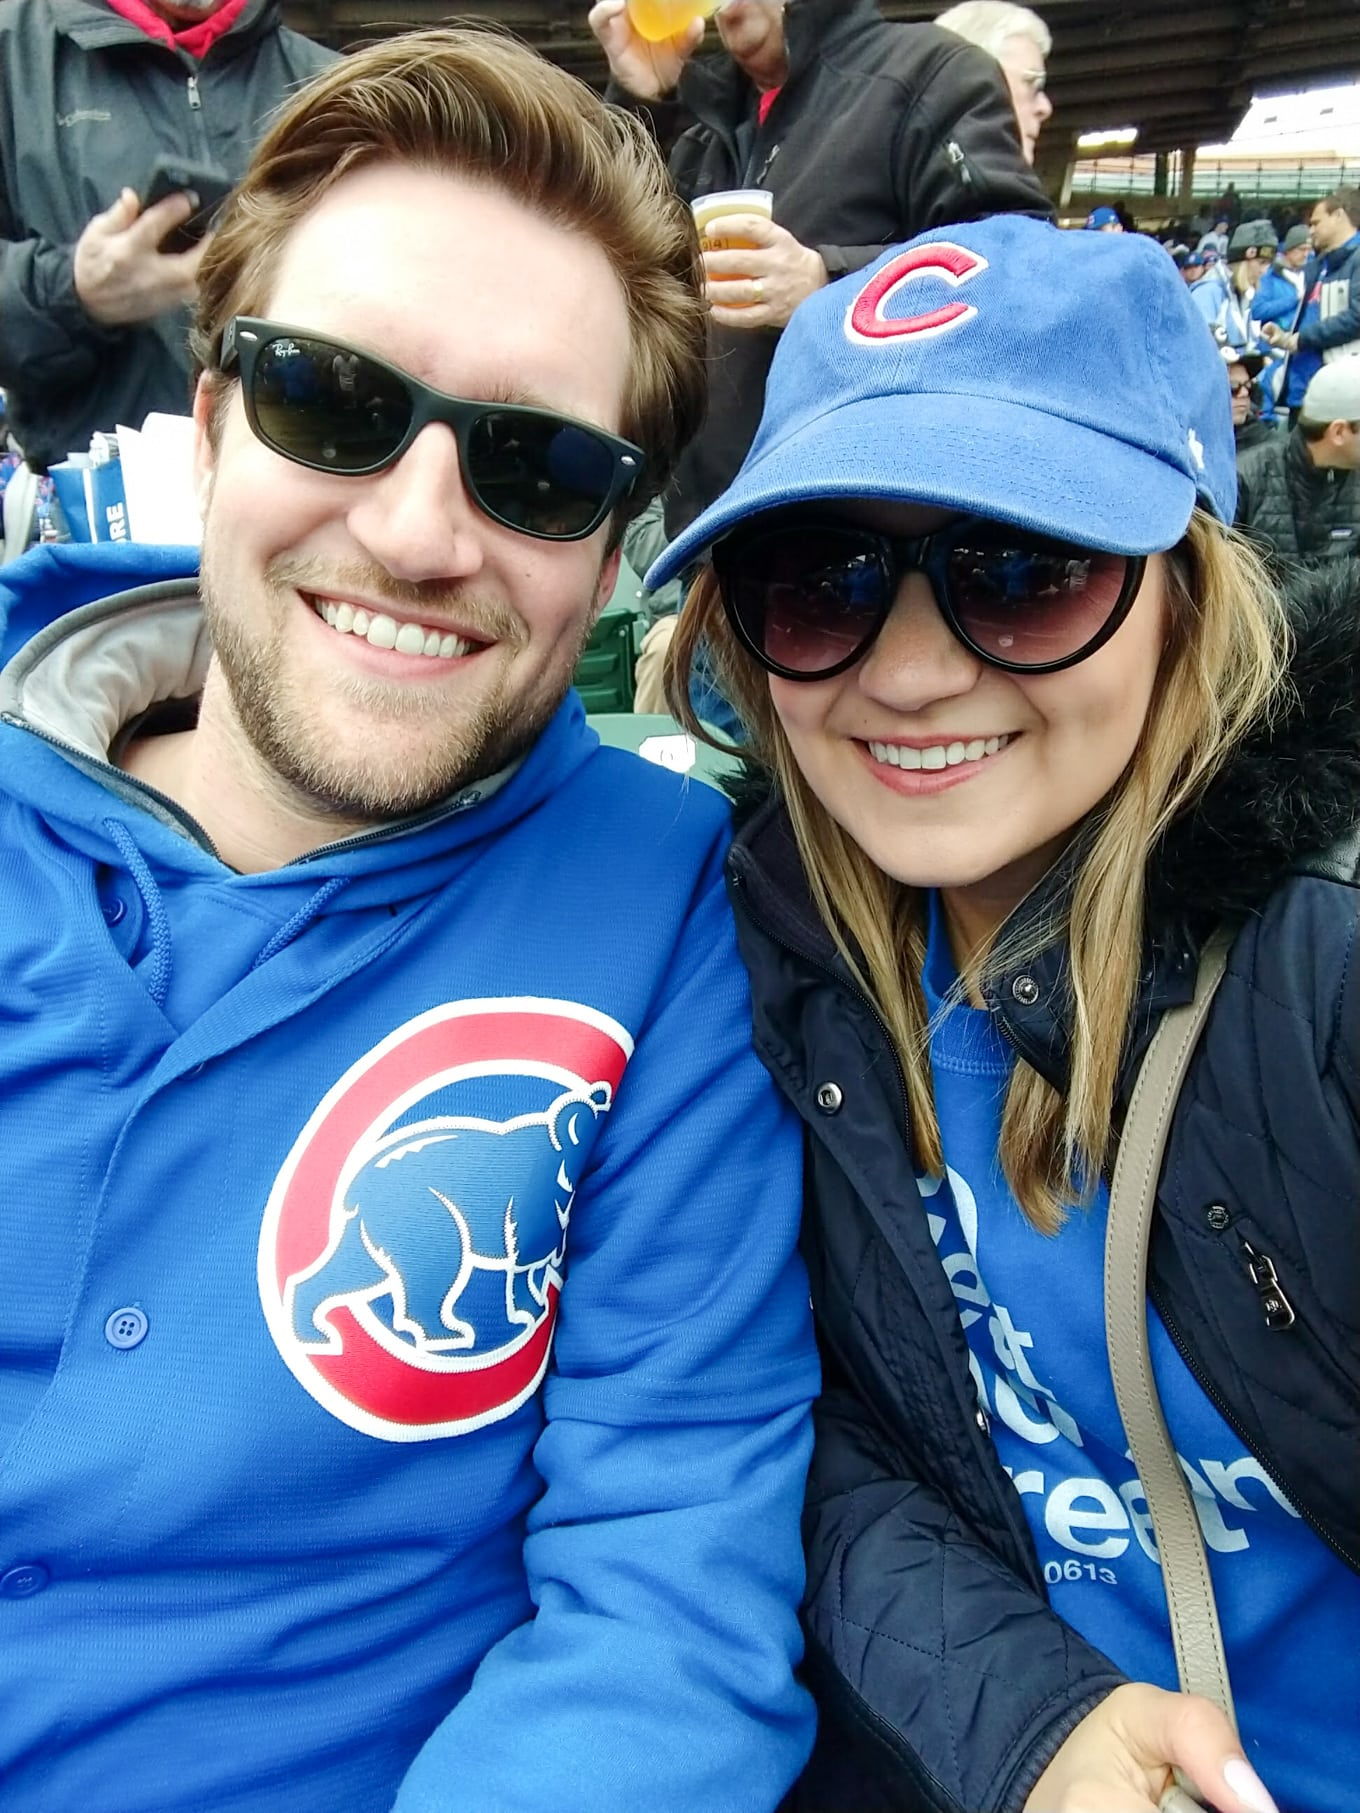 Lake Shore Lady Chicago Cubs Fan